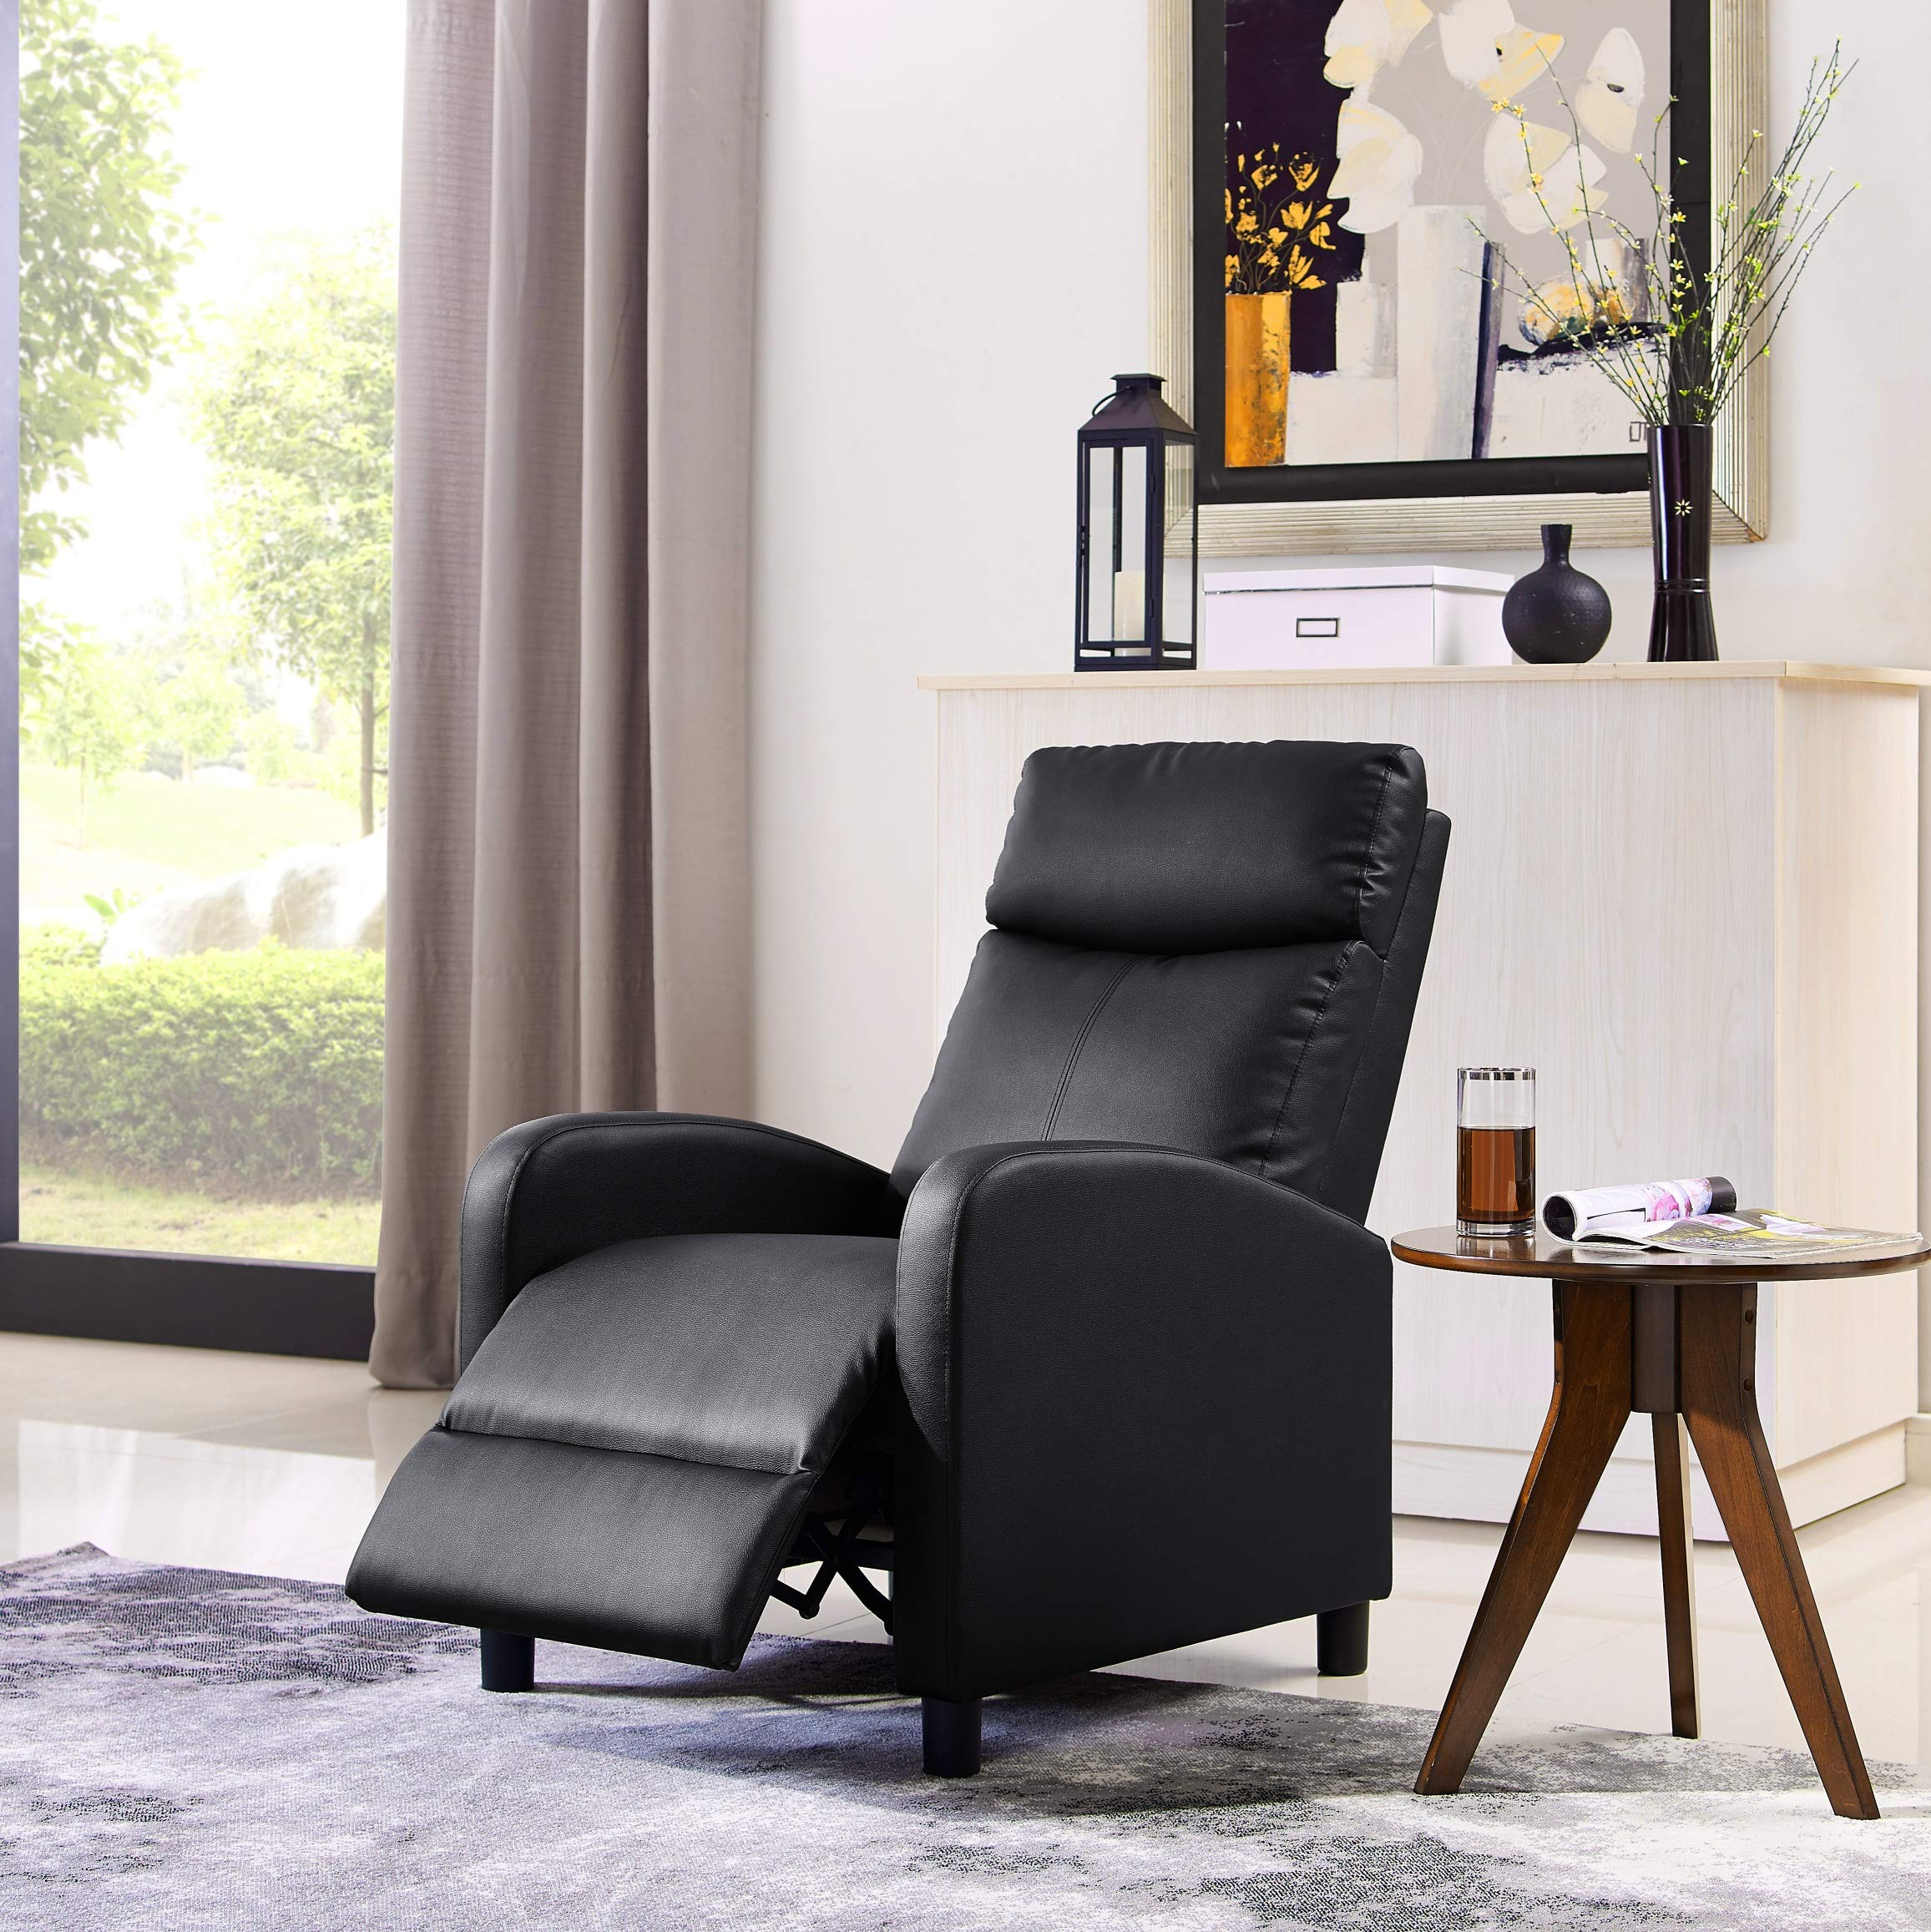 Single Recliner Chair Padded Seat PU Leather Living Room Sofa Recliner Modern Recliner Seat Club Chair Home Theater Seating (Black) by LifeDecor